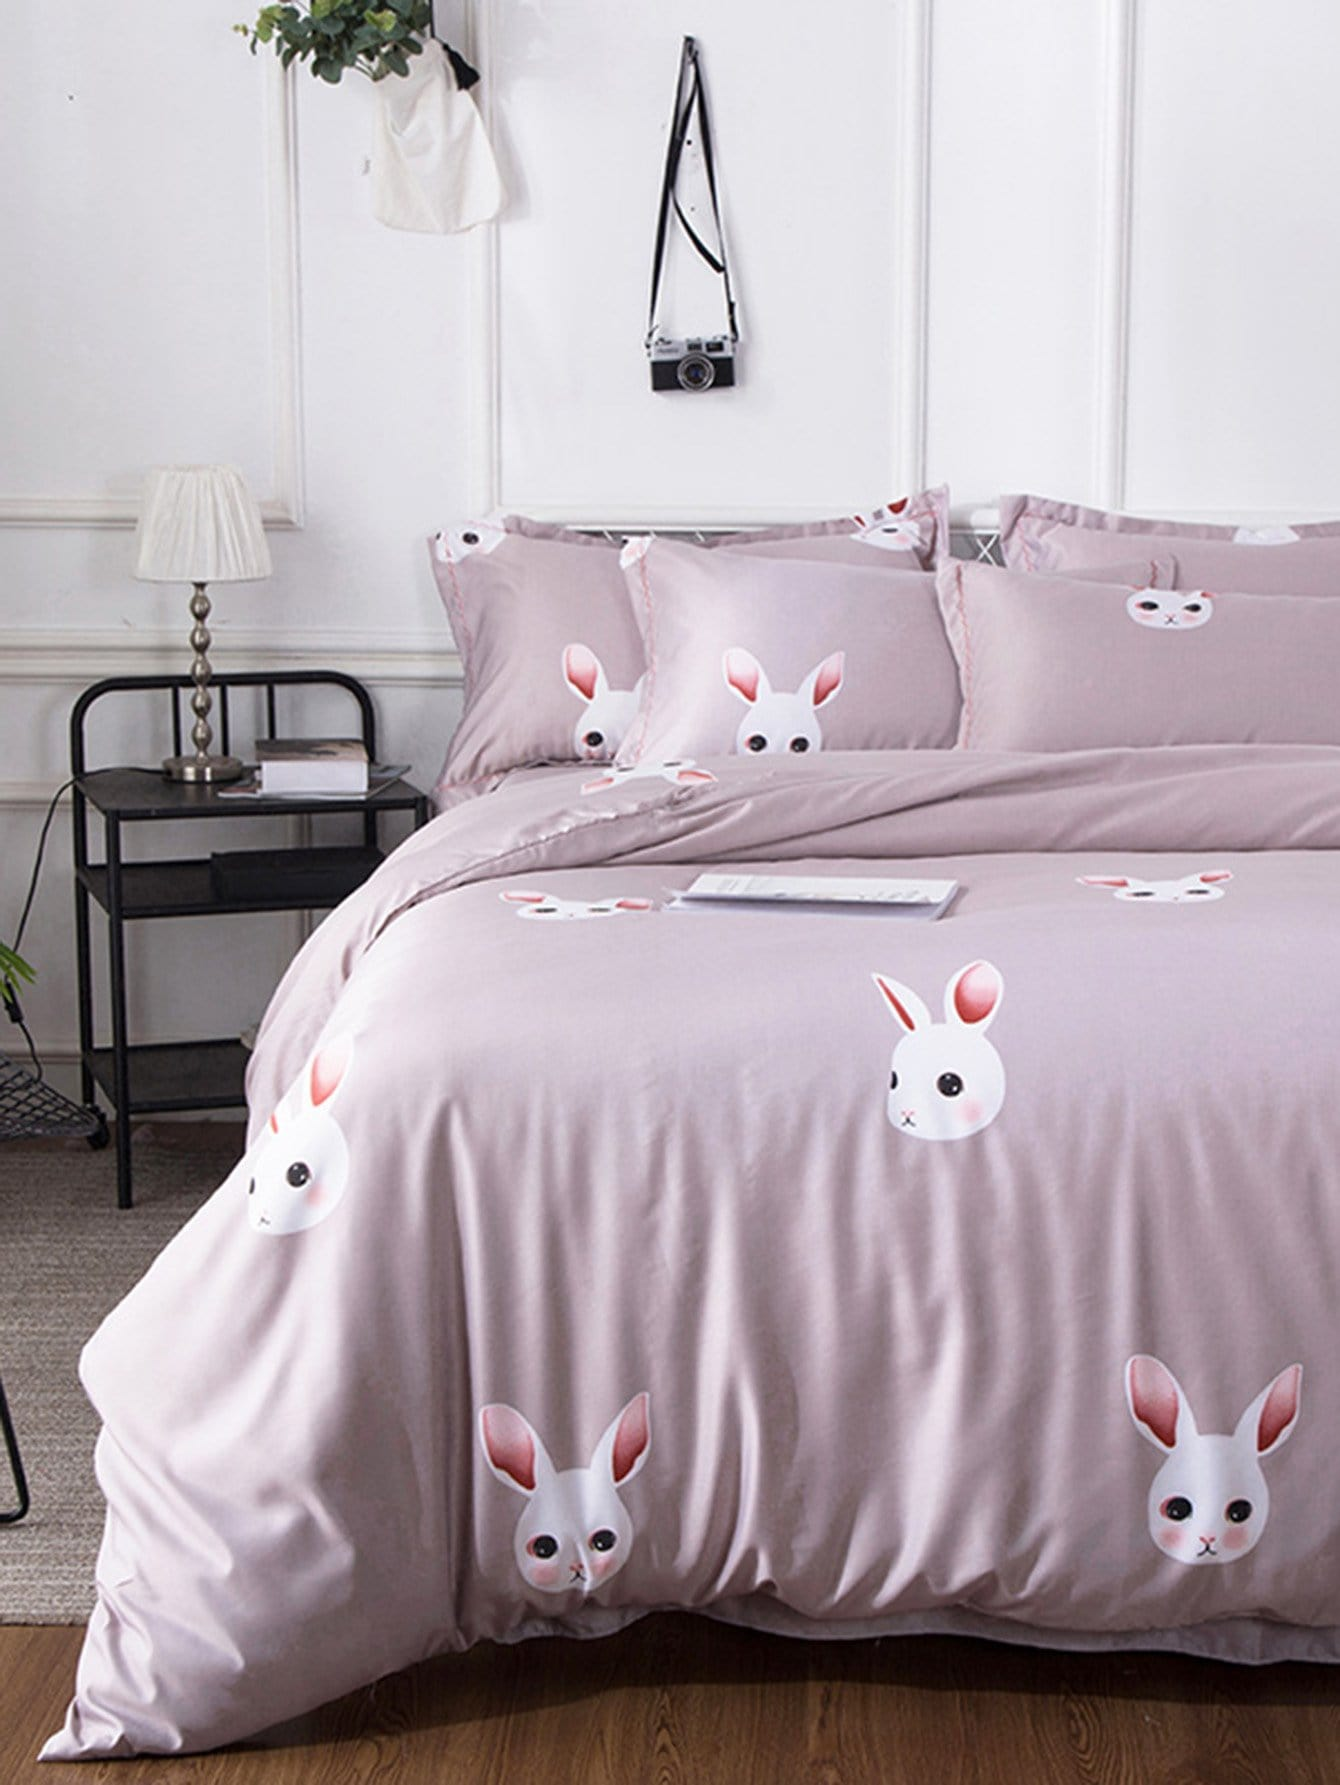 4Pcs Rabbit Print Duvet Cover Set rabbit print pullover